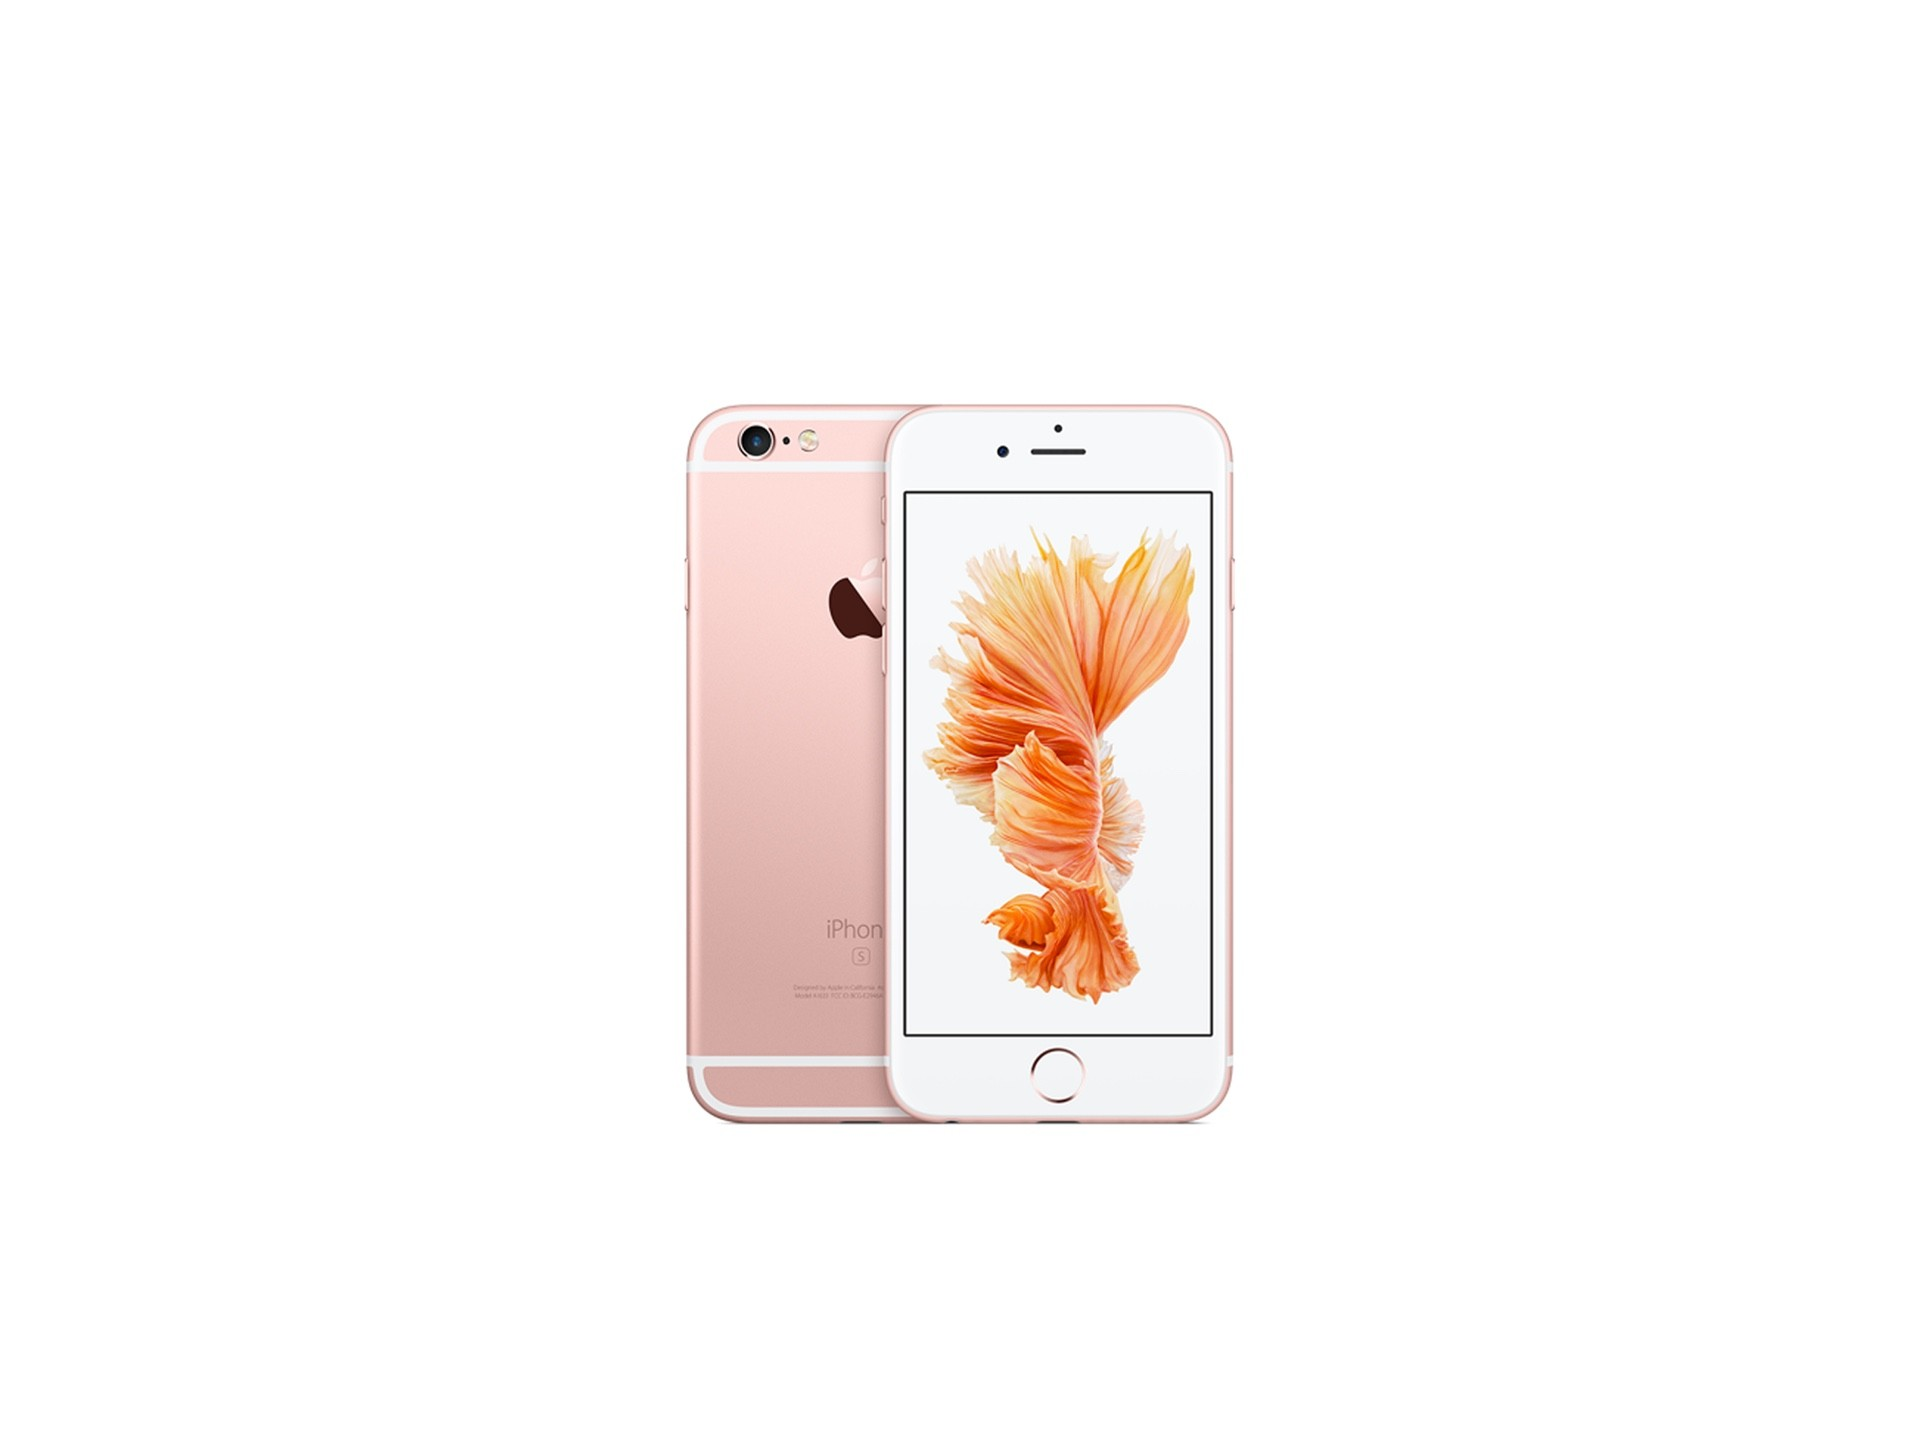 Rose Gold iPhone Wallpaper (79+ images)